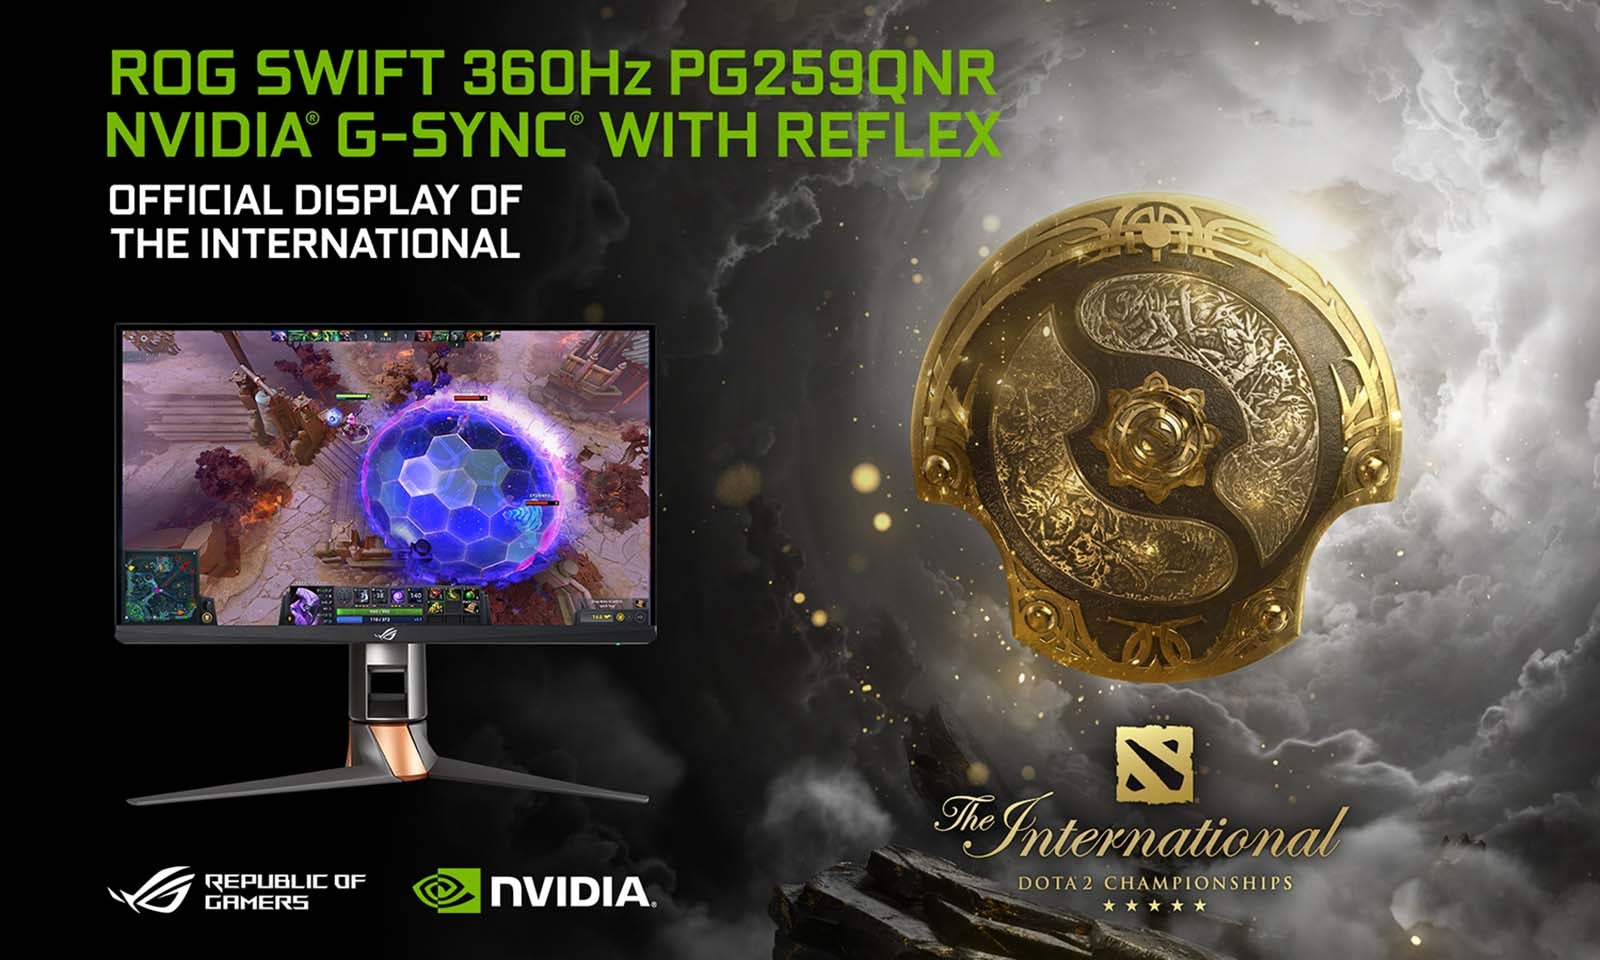 ASUS ROG Swift 360 Hz Official Display of DOTA 2 The International 10 Tournament